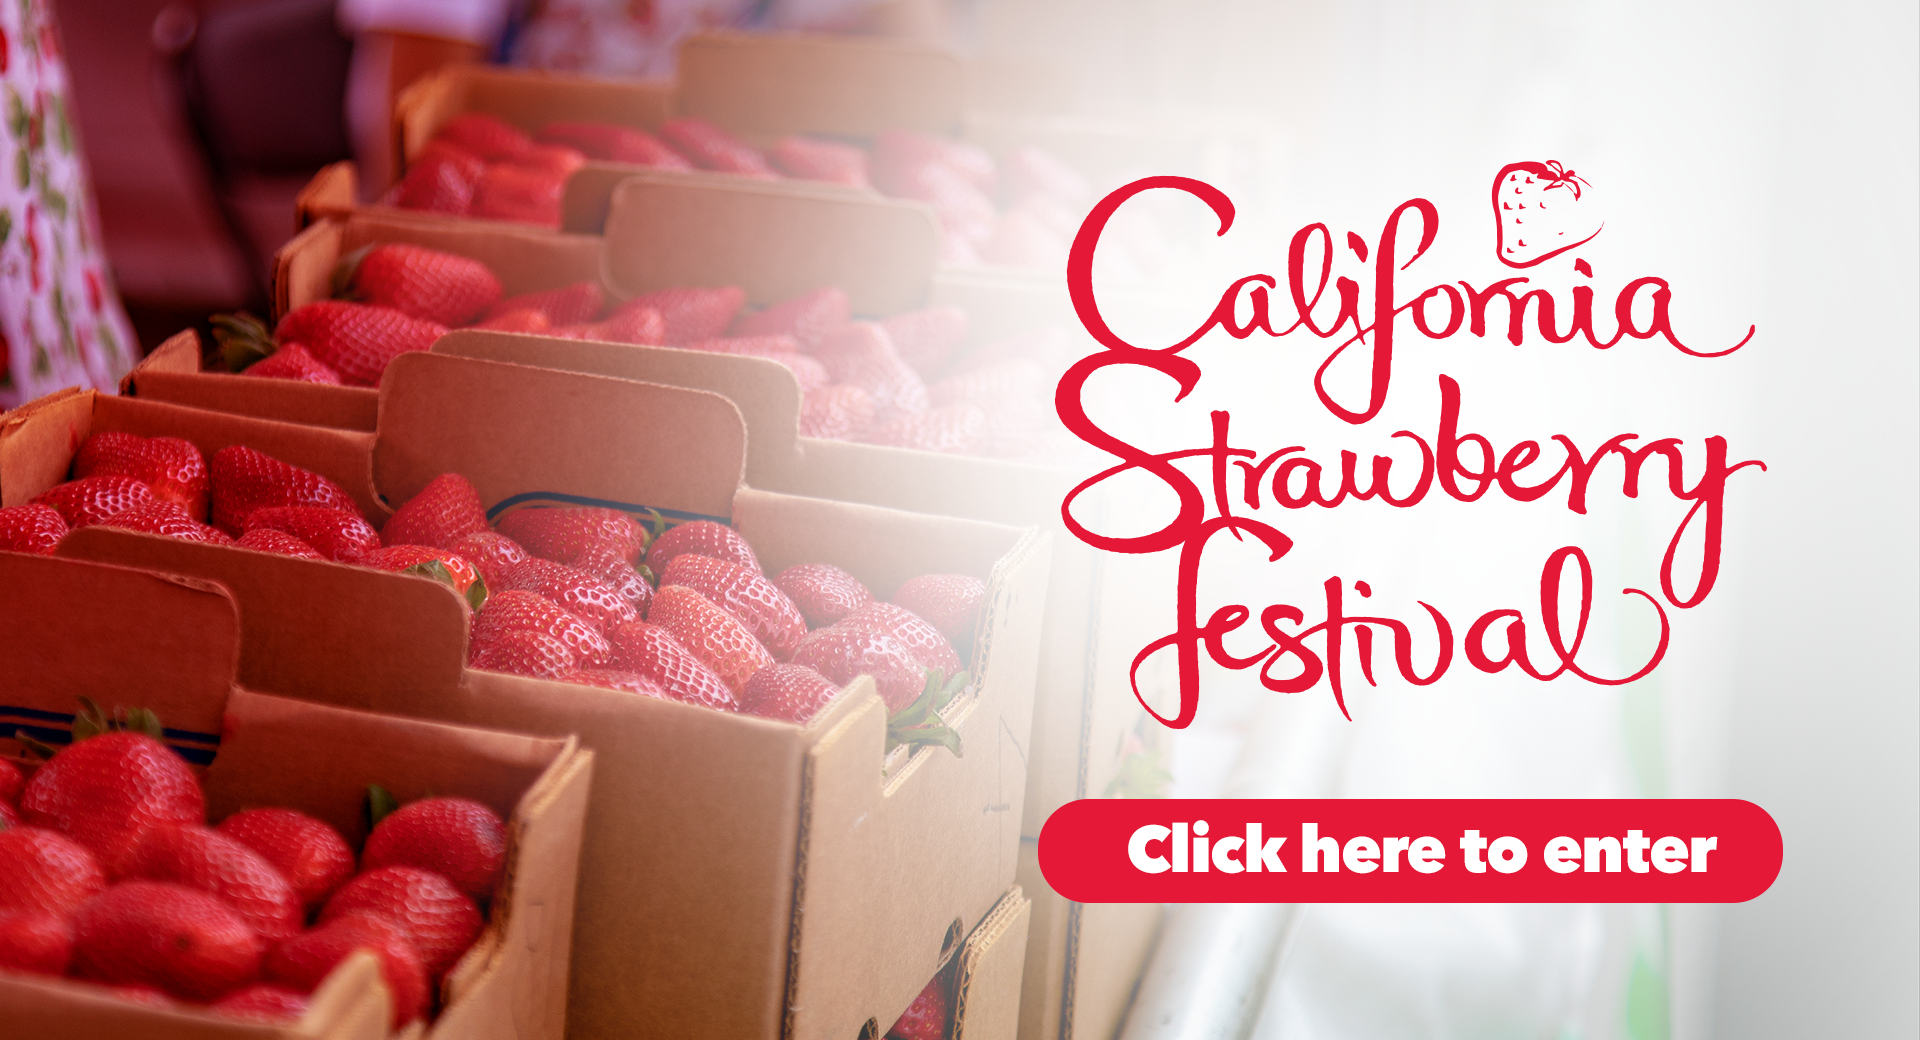 calistrawberryfest_1920x1040banner.png